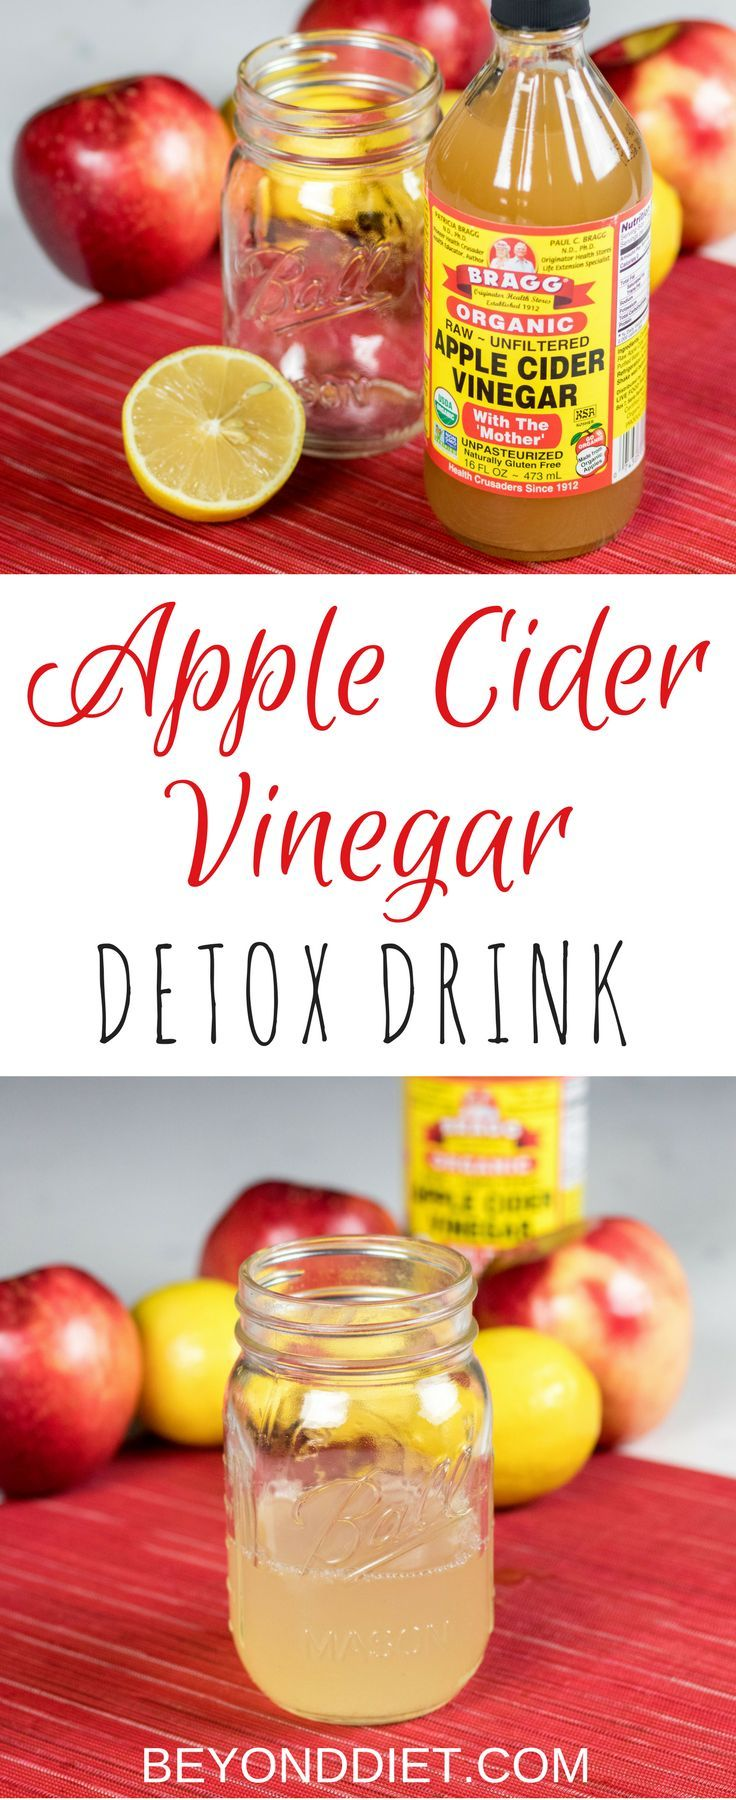 Apple Cider Vinegar Detox Drink - Recharge and detox with this metabolism boosting drink, made from some of Mother Nature's purest superfoods.